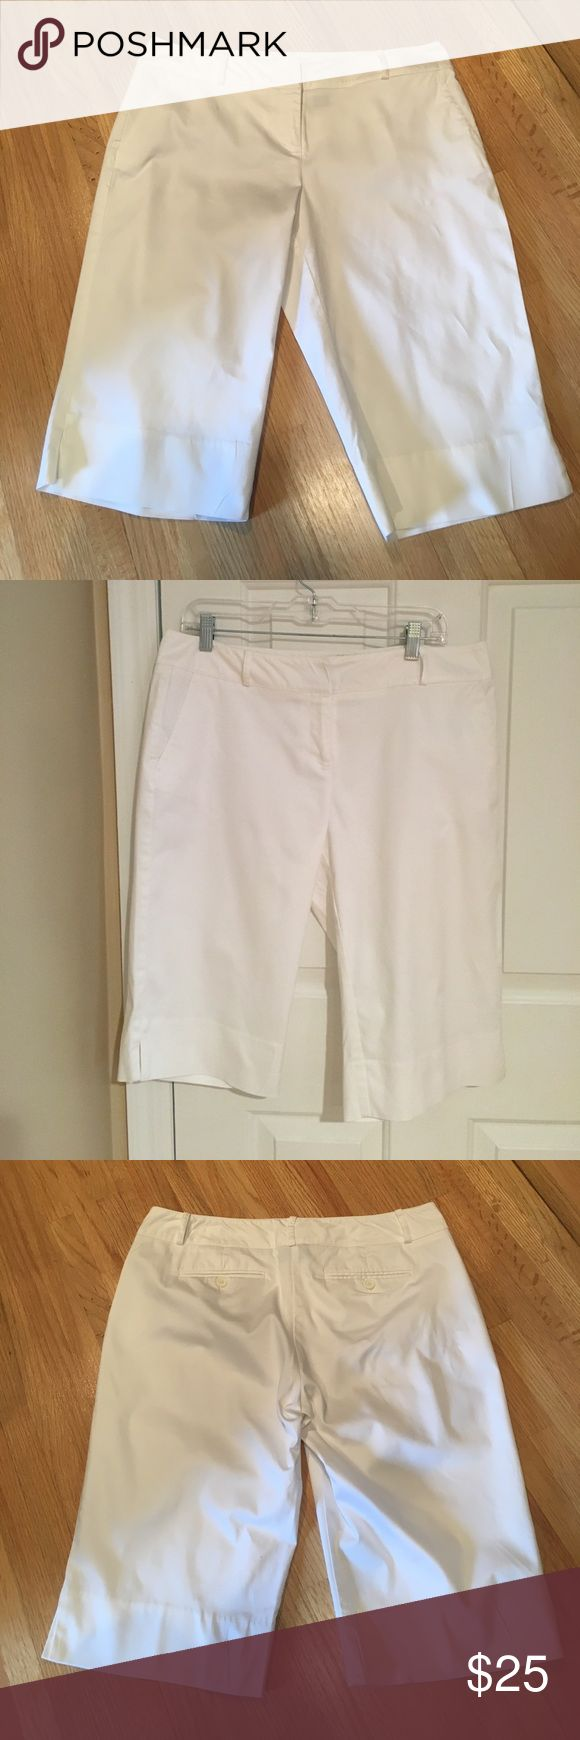 """White Bermuda Shorts INC size 12 White Bermuda Shorts from INC in a size 12. There are two open pockets on the side. Two pockets in the back. Fabric listed in photos. These shorts have a zipper fly with two claps at the top. There are two small slits on the outside of each pant leg (see pictures details). Machine washable.  Length-24"""" Rise- 10"""" Inseam-14"""" Waist-17"""" INC International Concepts Shorts Bermudas"""